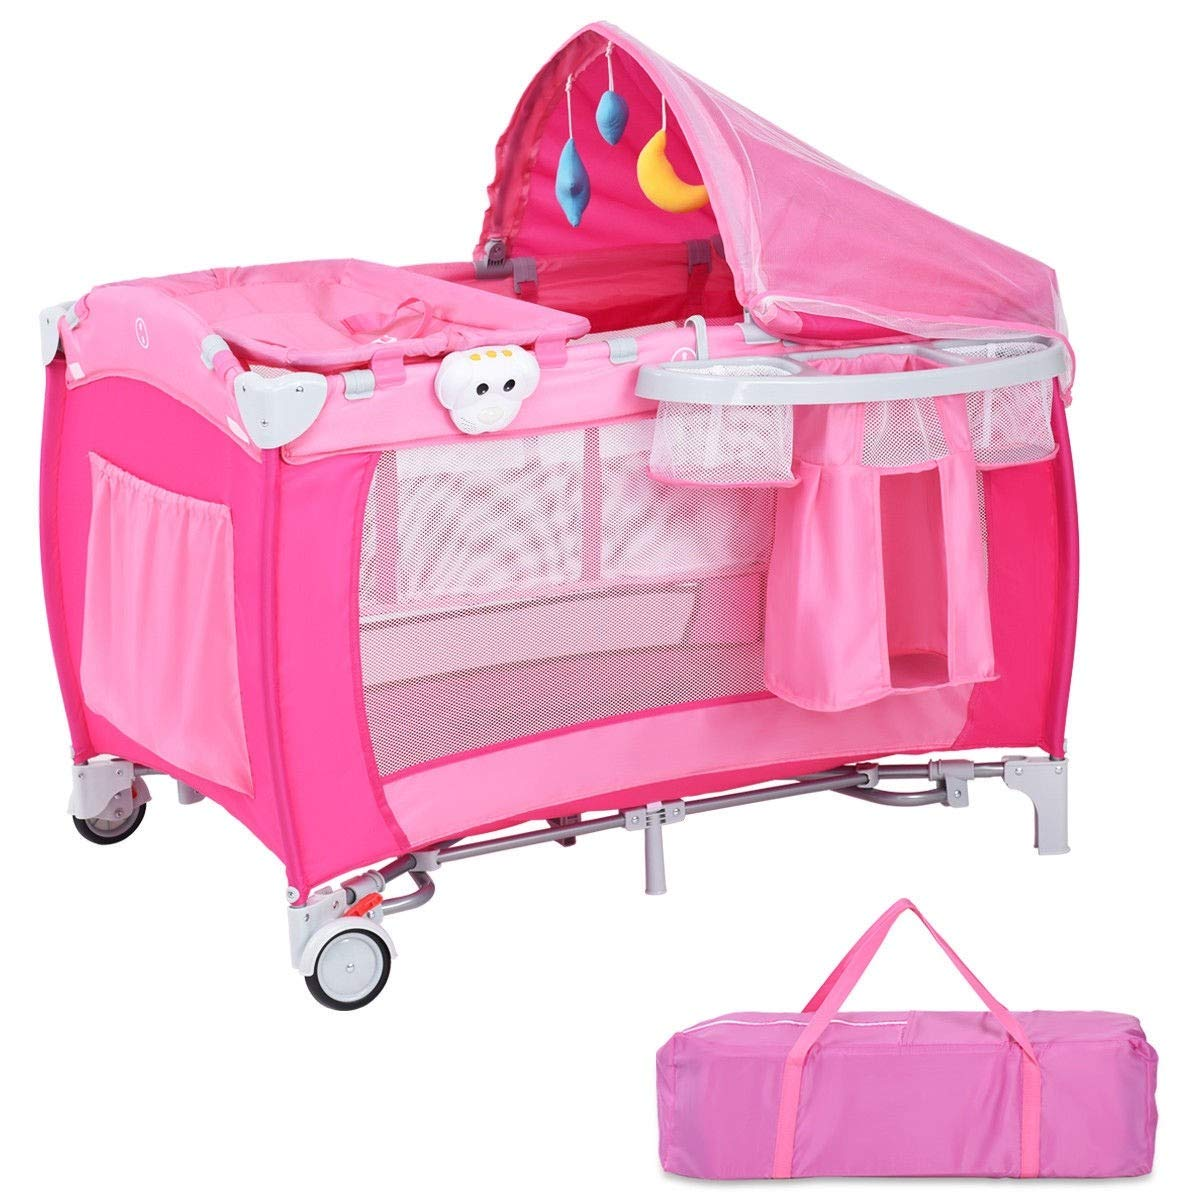 LHONE Portable Foldable Travel Baby Crib Playpen Baby 3 in One Crib Playpen Travel Playpen Changer w/Mosquito Net and Carring Bag (Pink) by LHONE (Image #7)